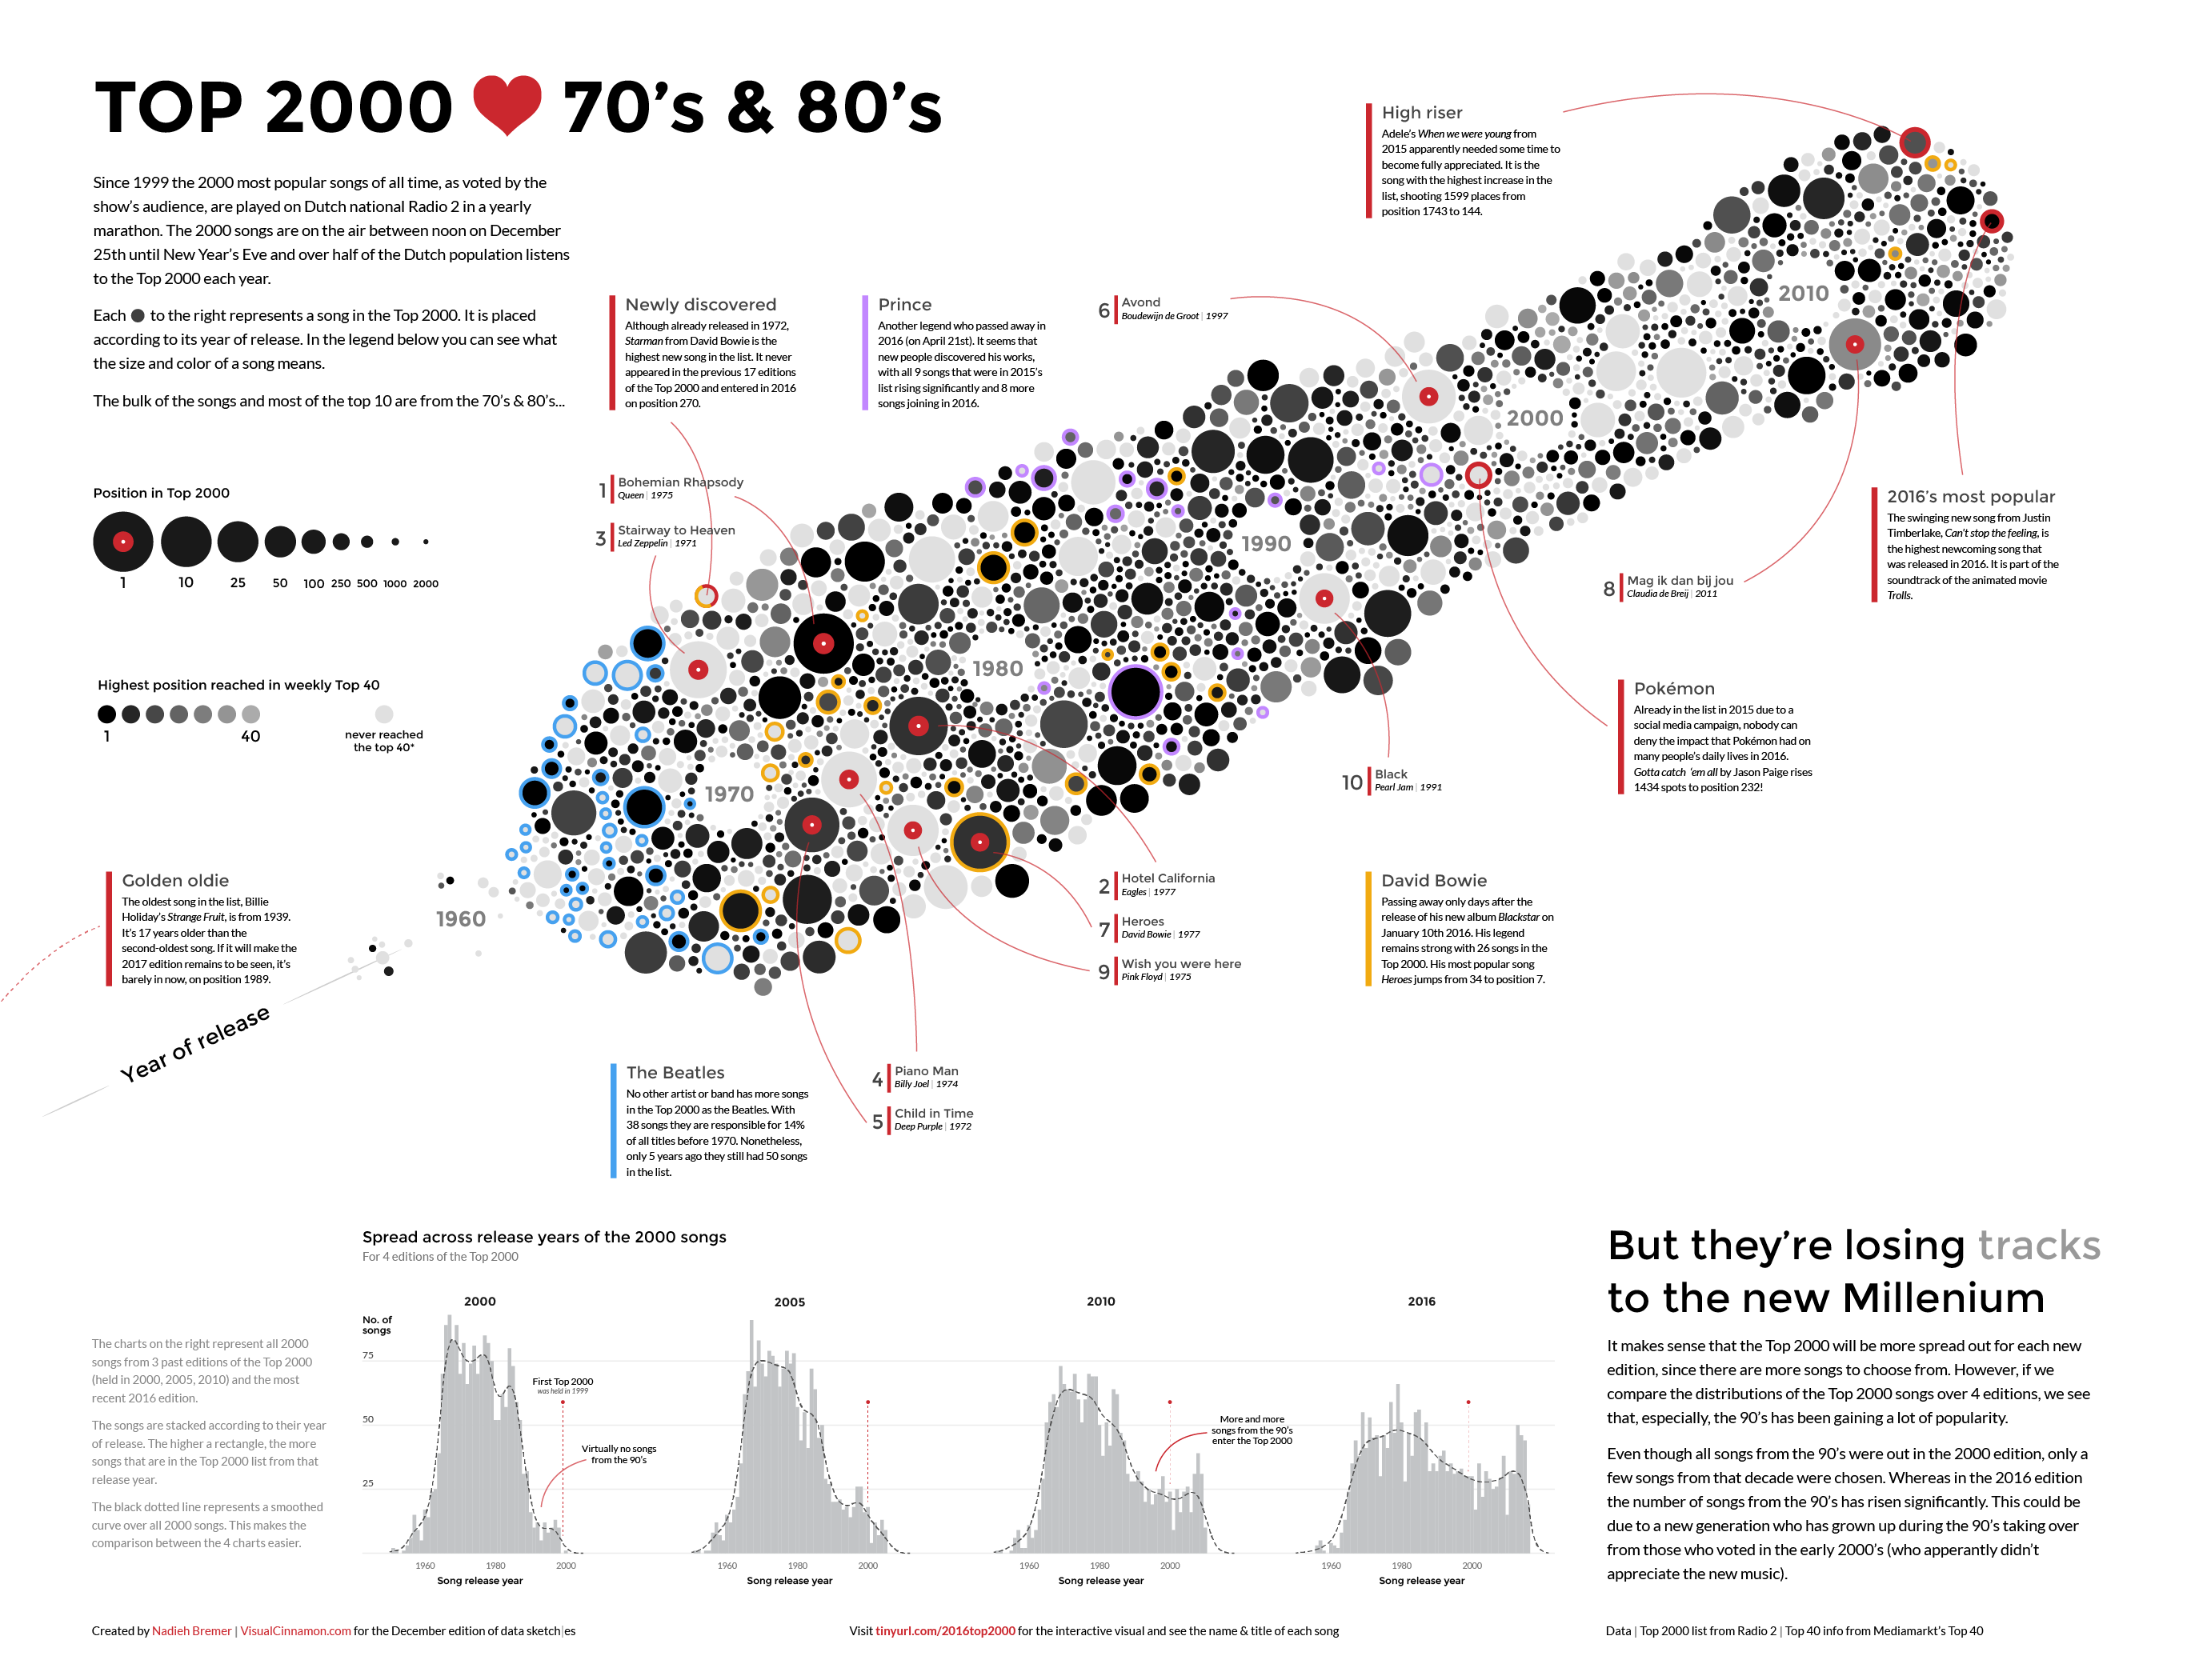 The final infographic about how the Top 2000 lives the 70s and 80s